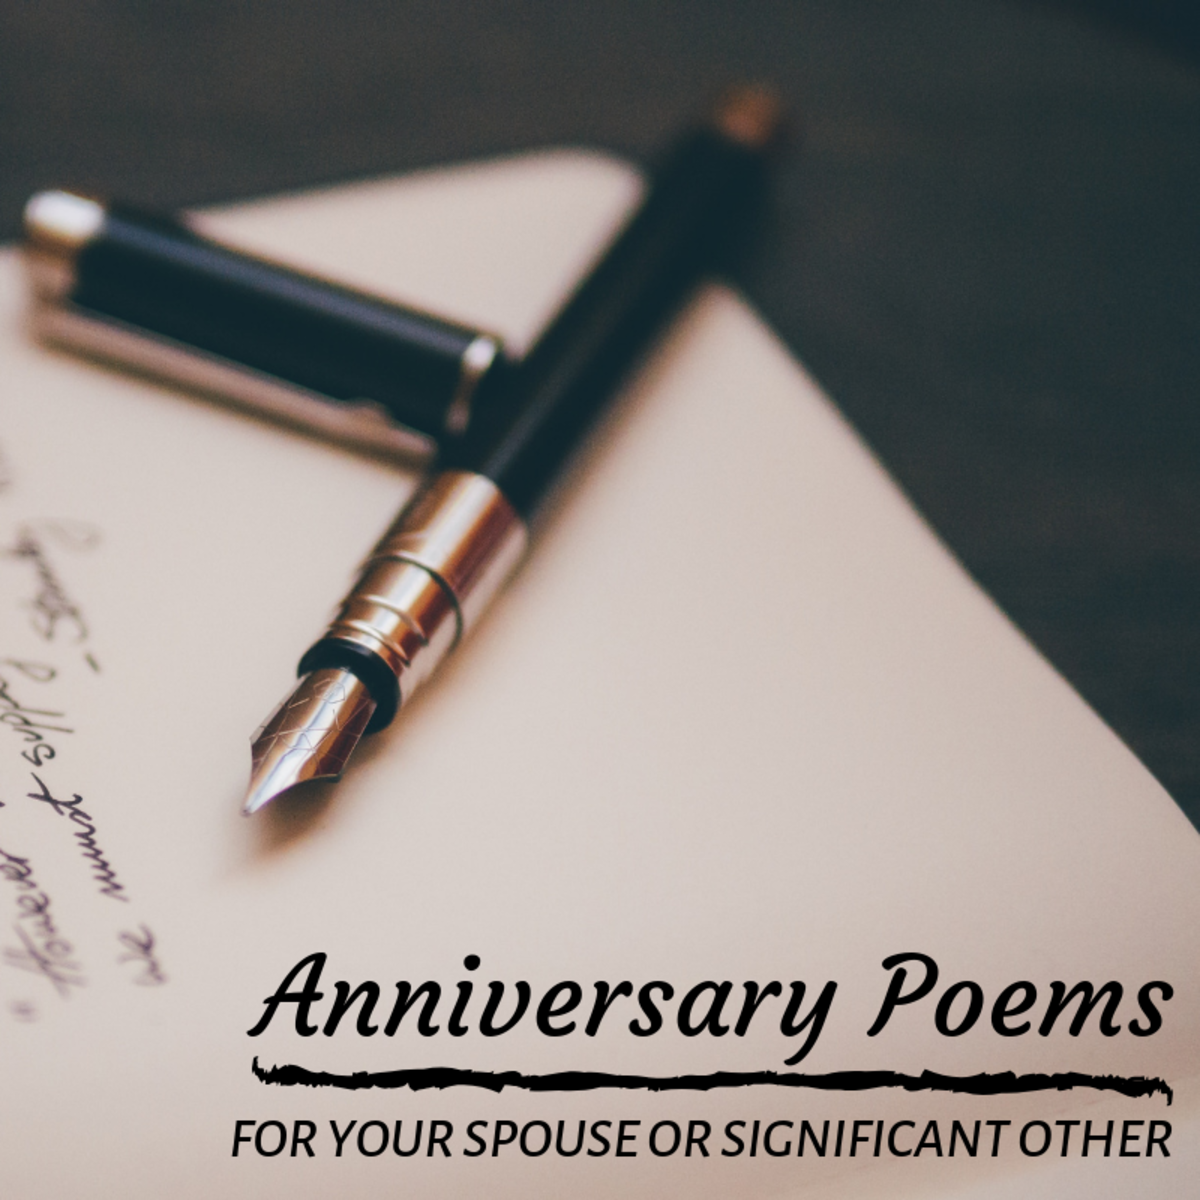 Composing an original poem or sharing an existing piece of prose you connect with is a great way to express your love on your anniversary.